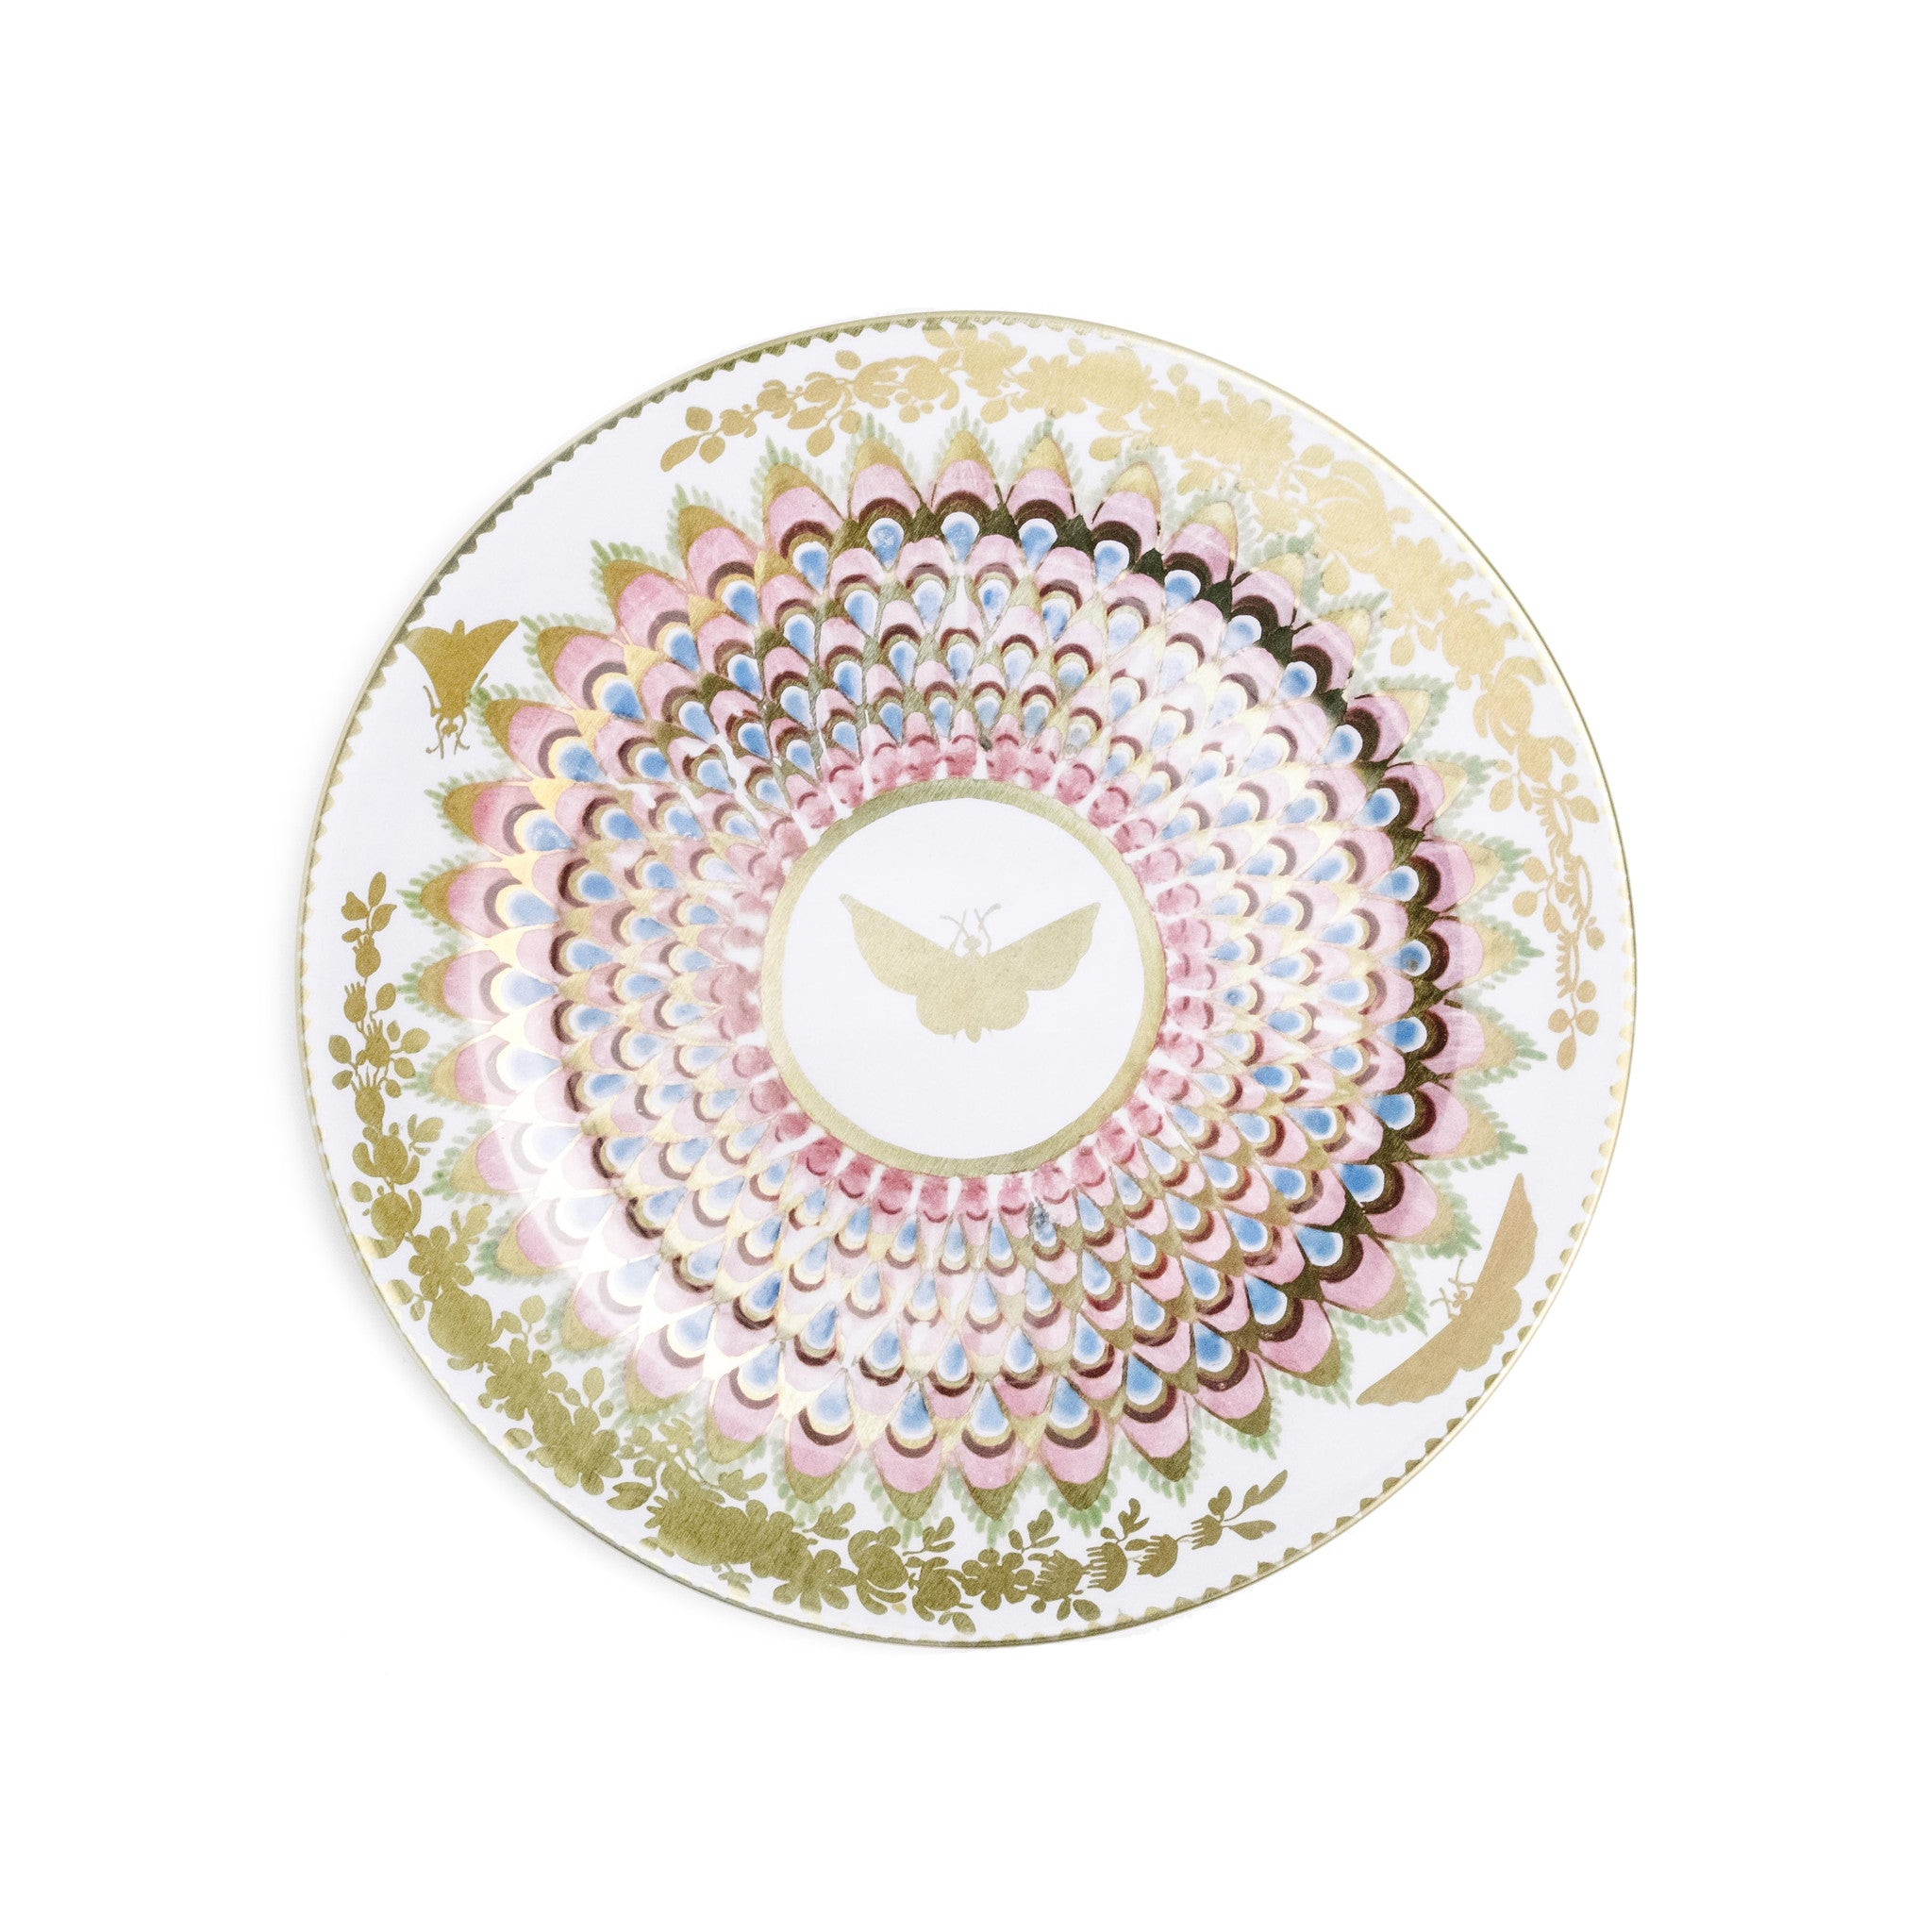 Enameled tin china plates the pioneer woman mercantile for The pioneer woman magazine subscription